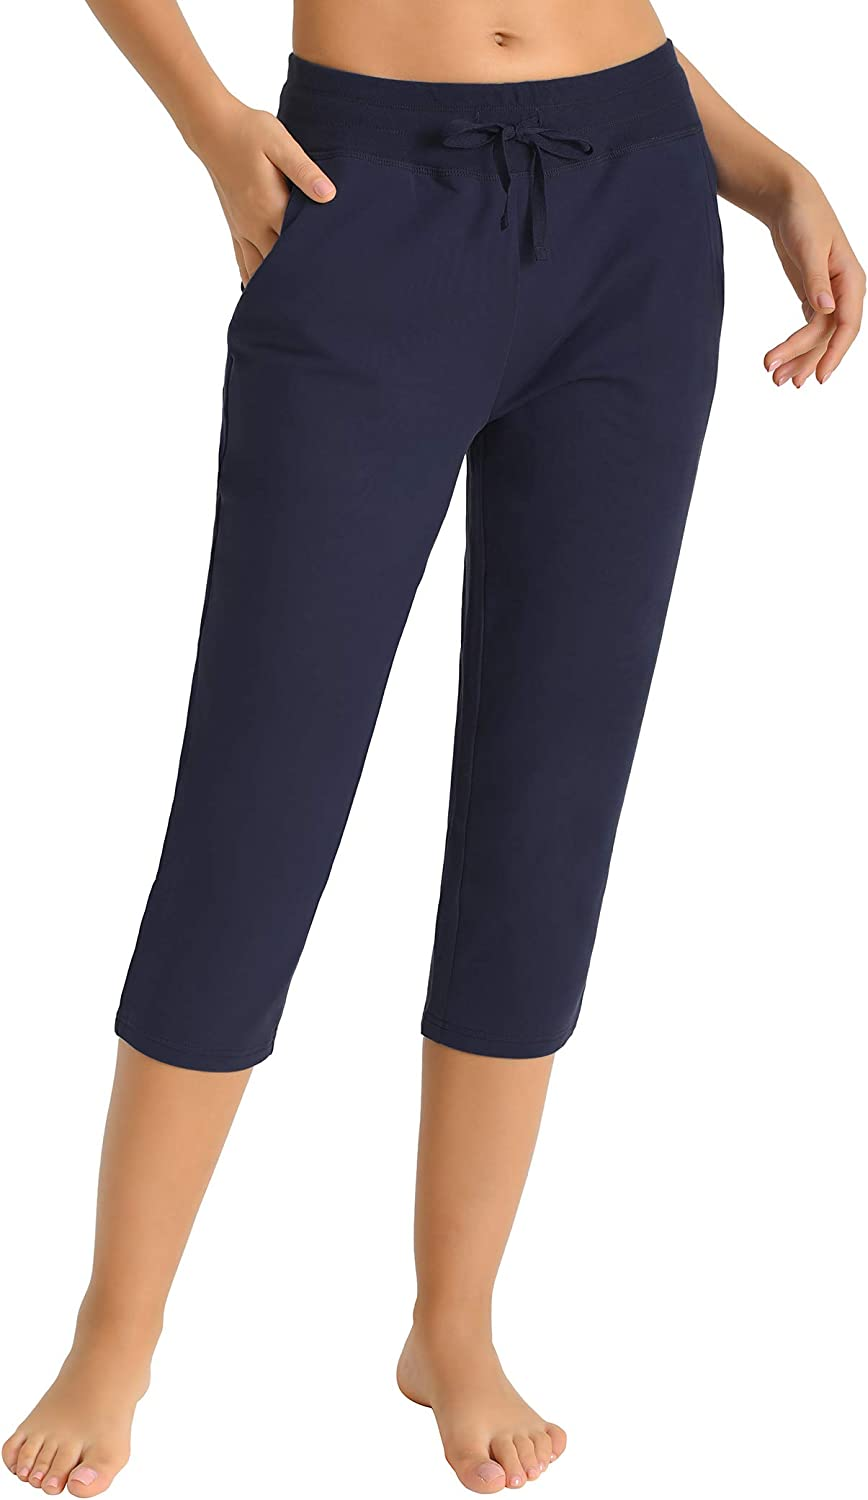 Latuza Women's Cotton Joggers Knit Pockets Safety and Long-awaited trust with Capri Pants